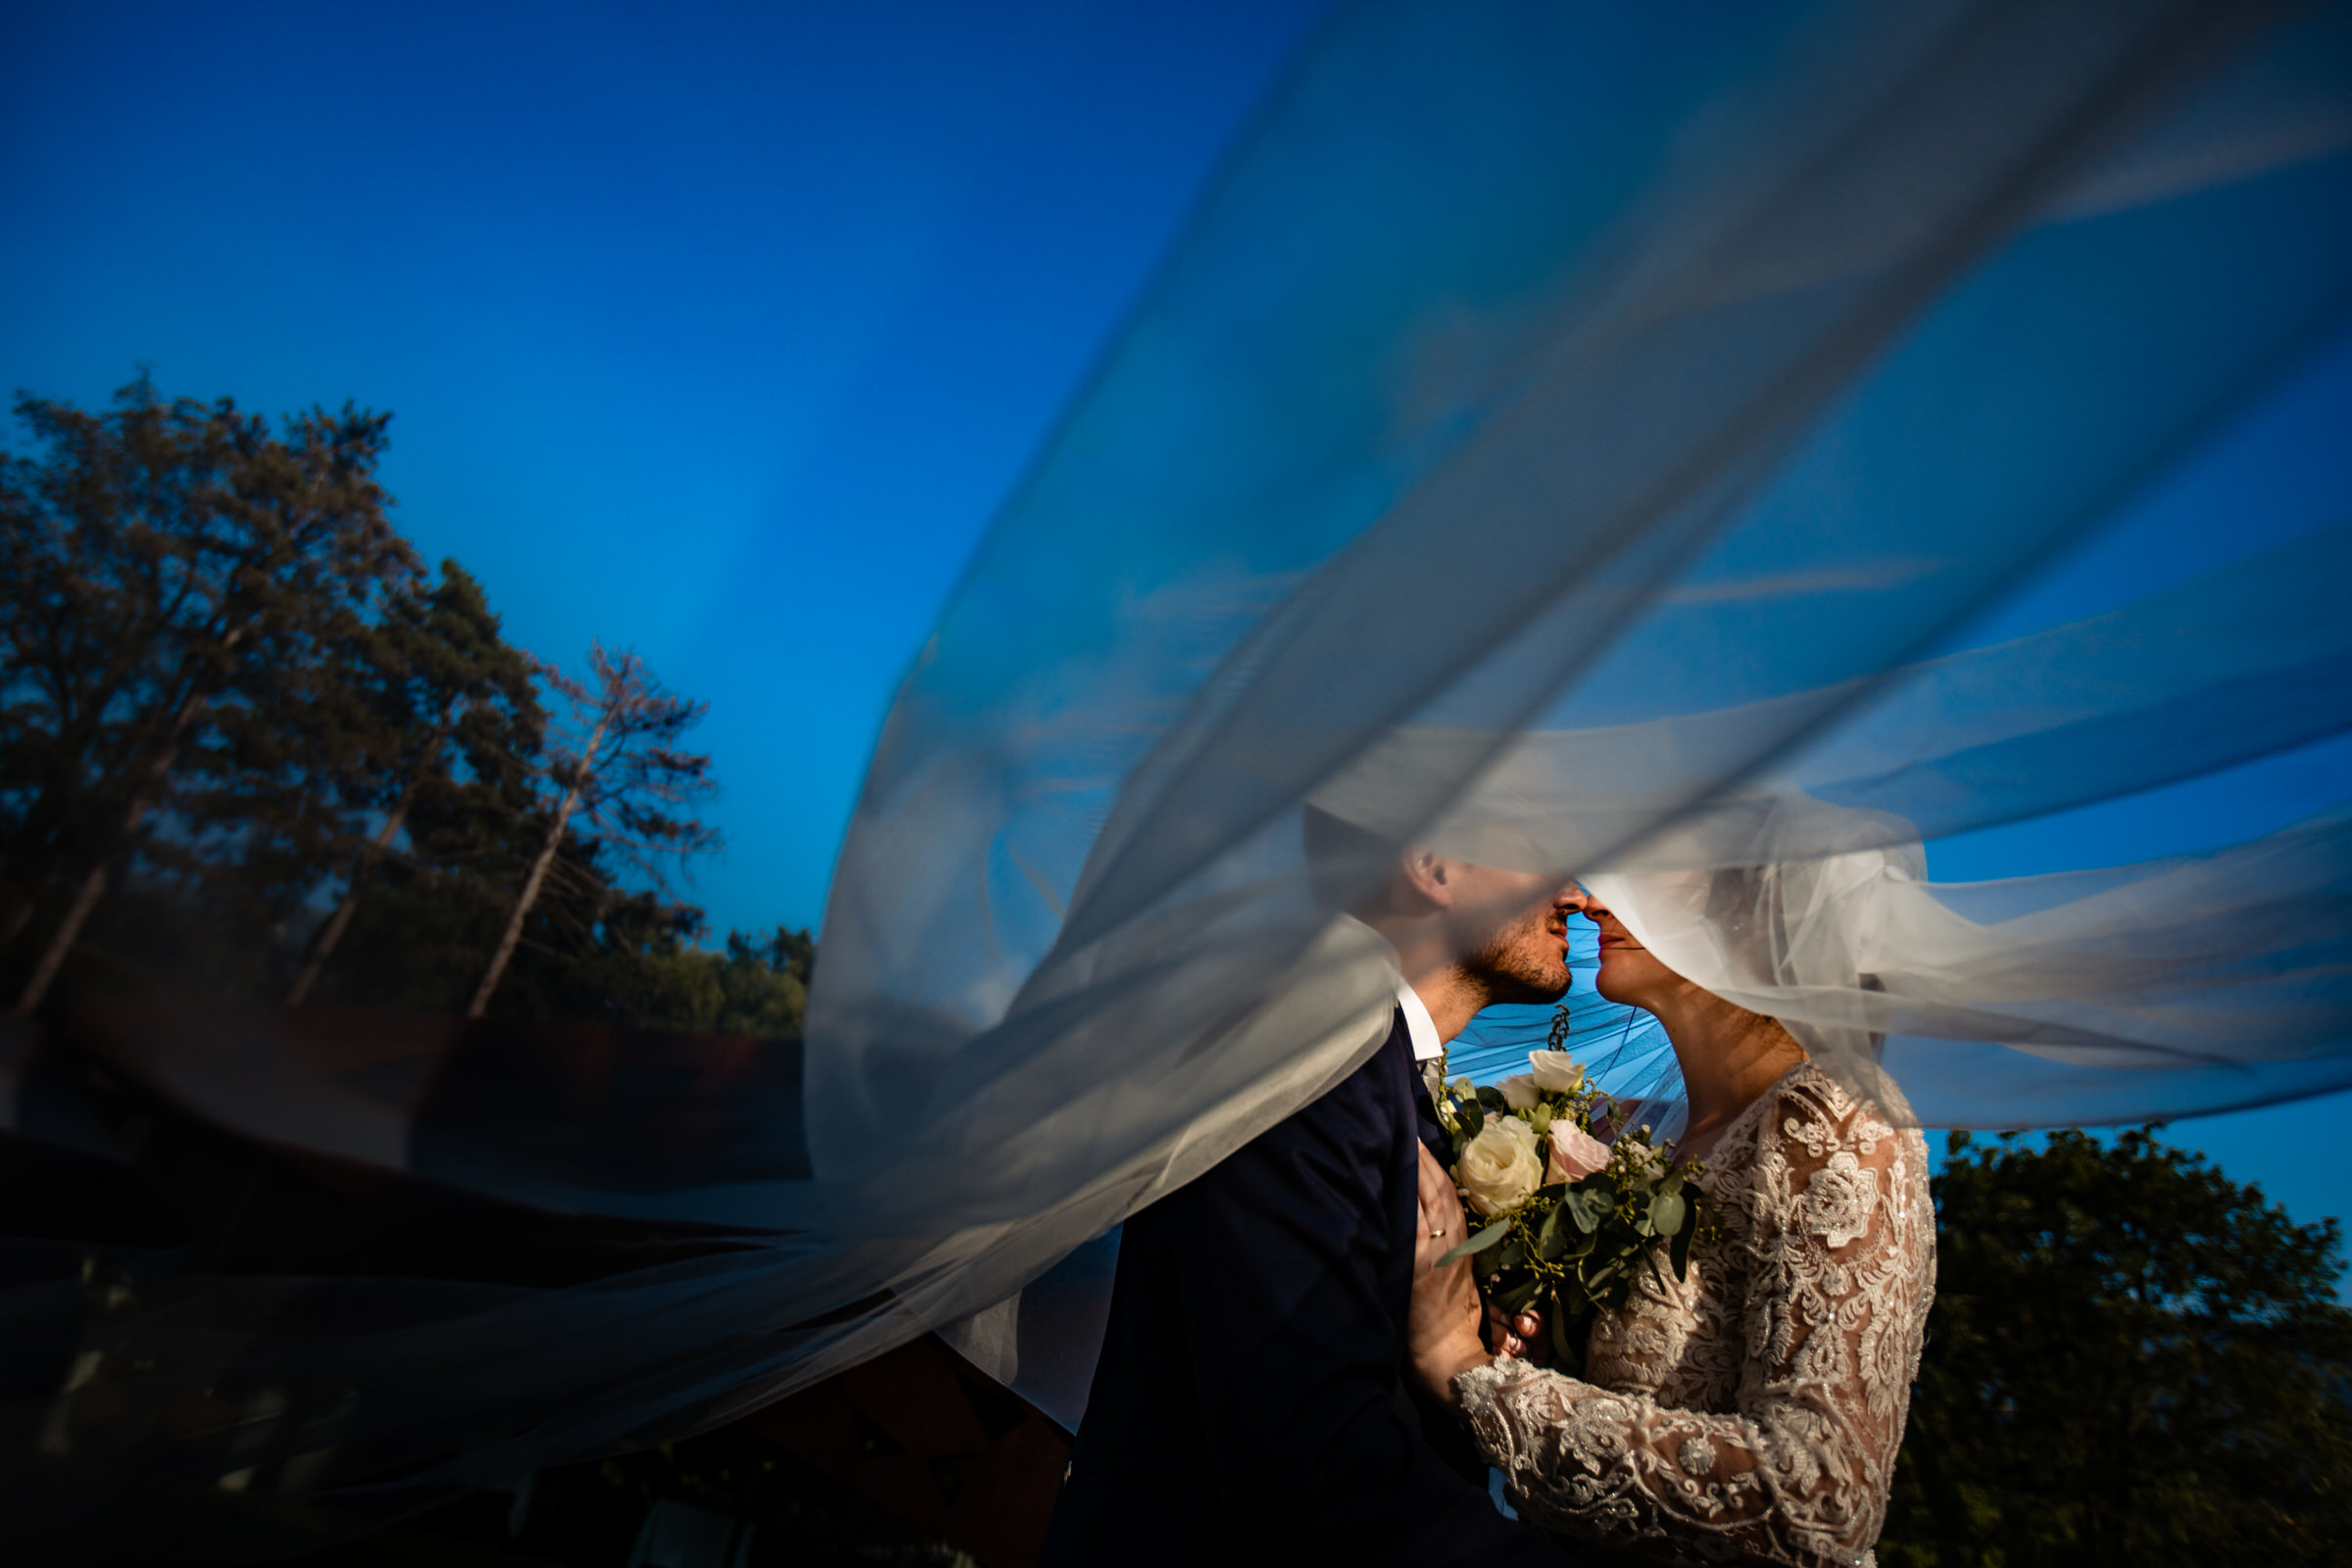 Bride and groom kiss under windblown veil - photo by Luca + Marta Gallizio Photography